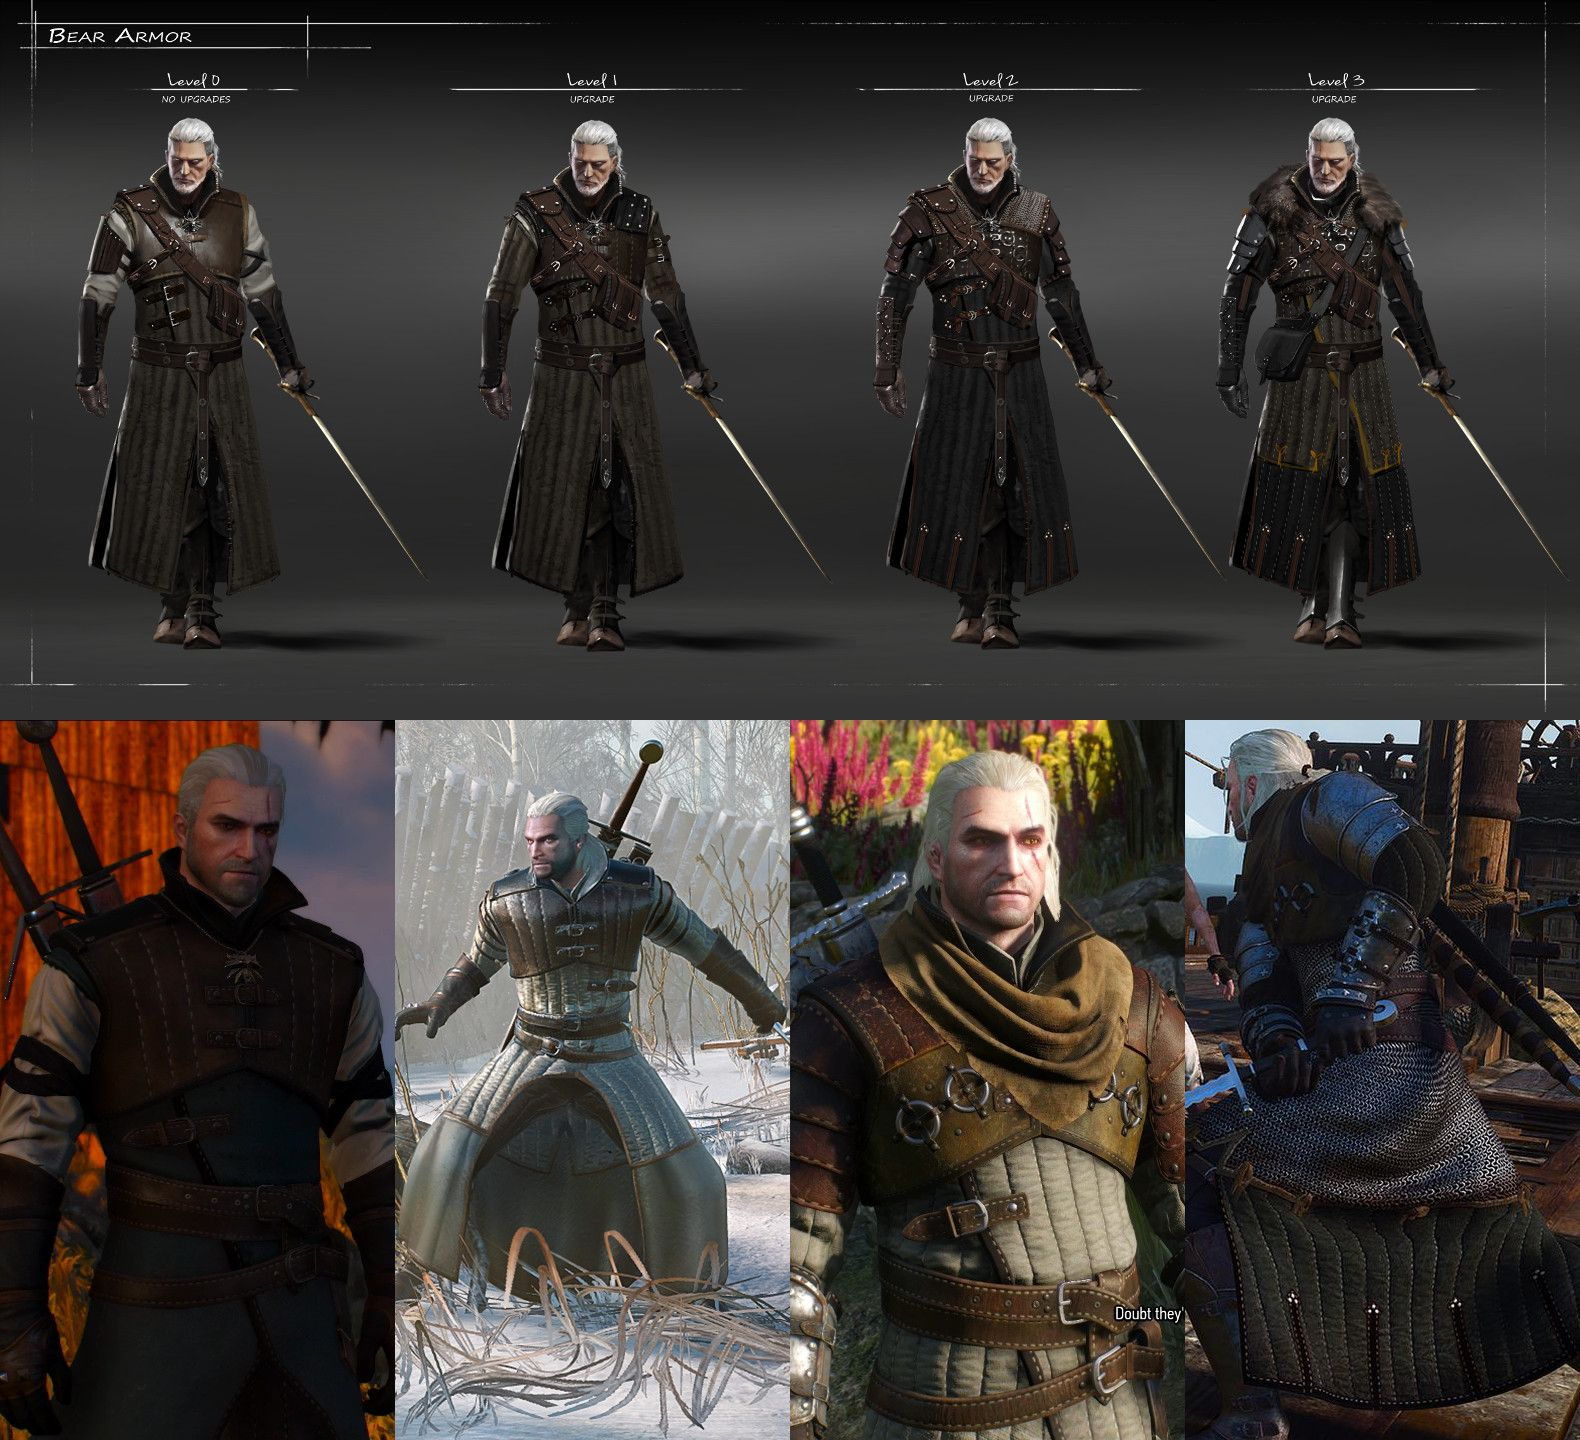 Pin by Anthony Jones on Dark Road | Witcher 3 bear armor